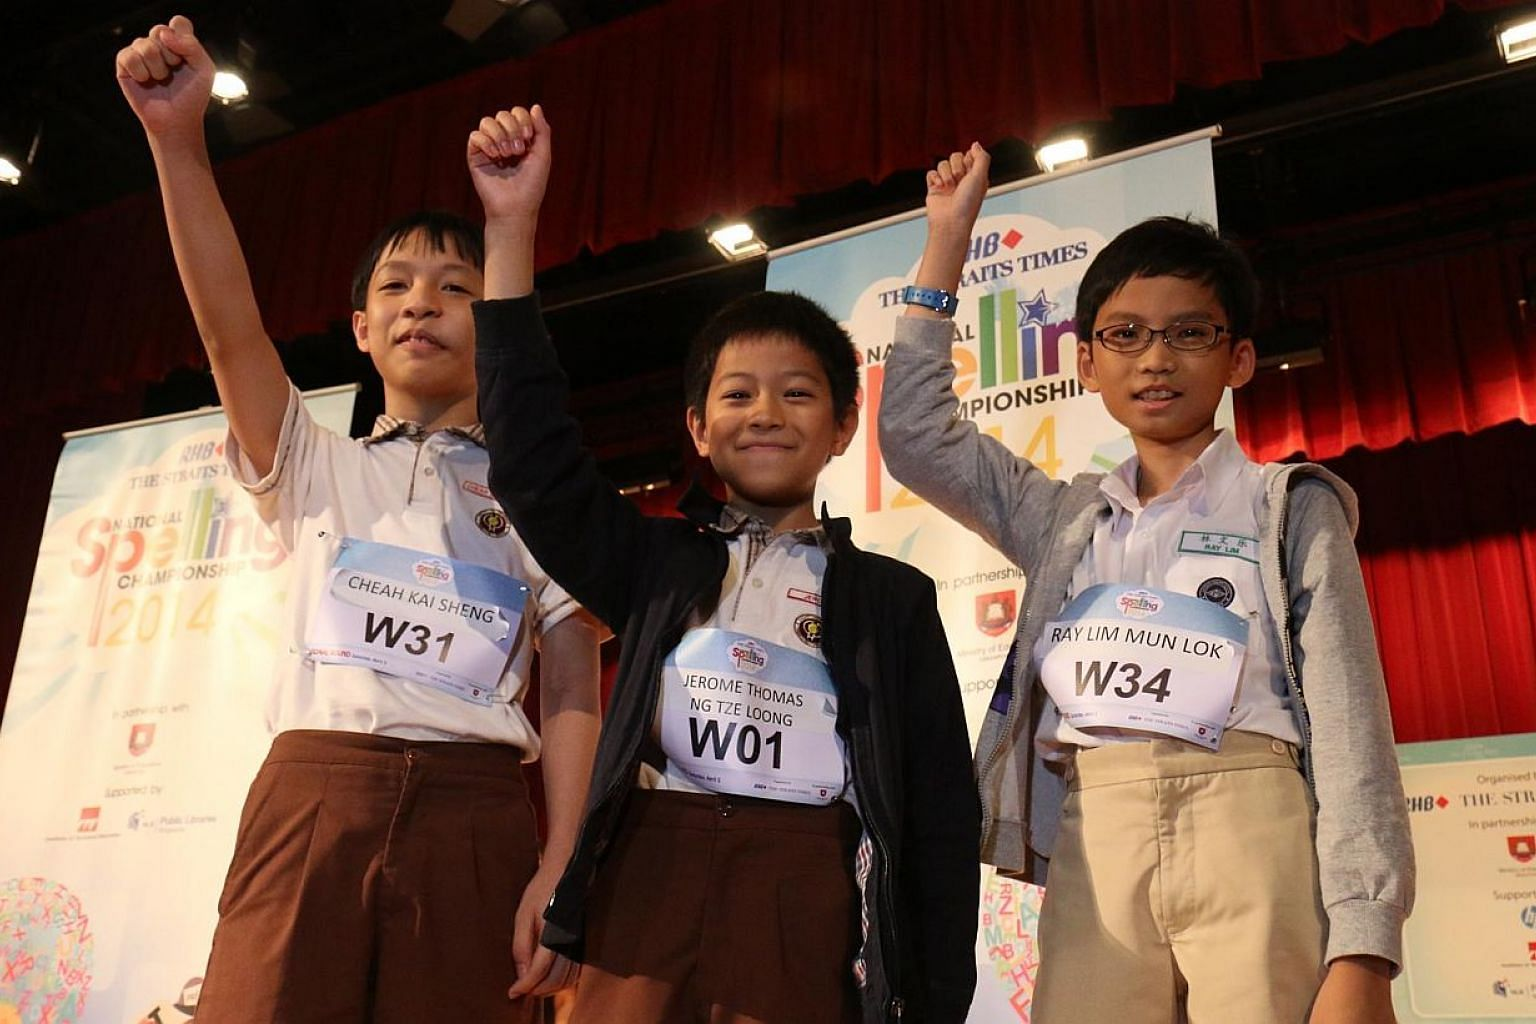 (From left) Cheah Kai Sheng, 12, and Jerome Ng,10, both from Henry Park Primary School, and Ray Lim, 10, from Nanyang Primary School, were crowned 2nd runner-up, champion and 1st runner-up respectively at the RHB-The Straits Times National Spelling C